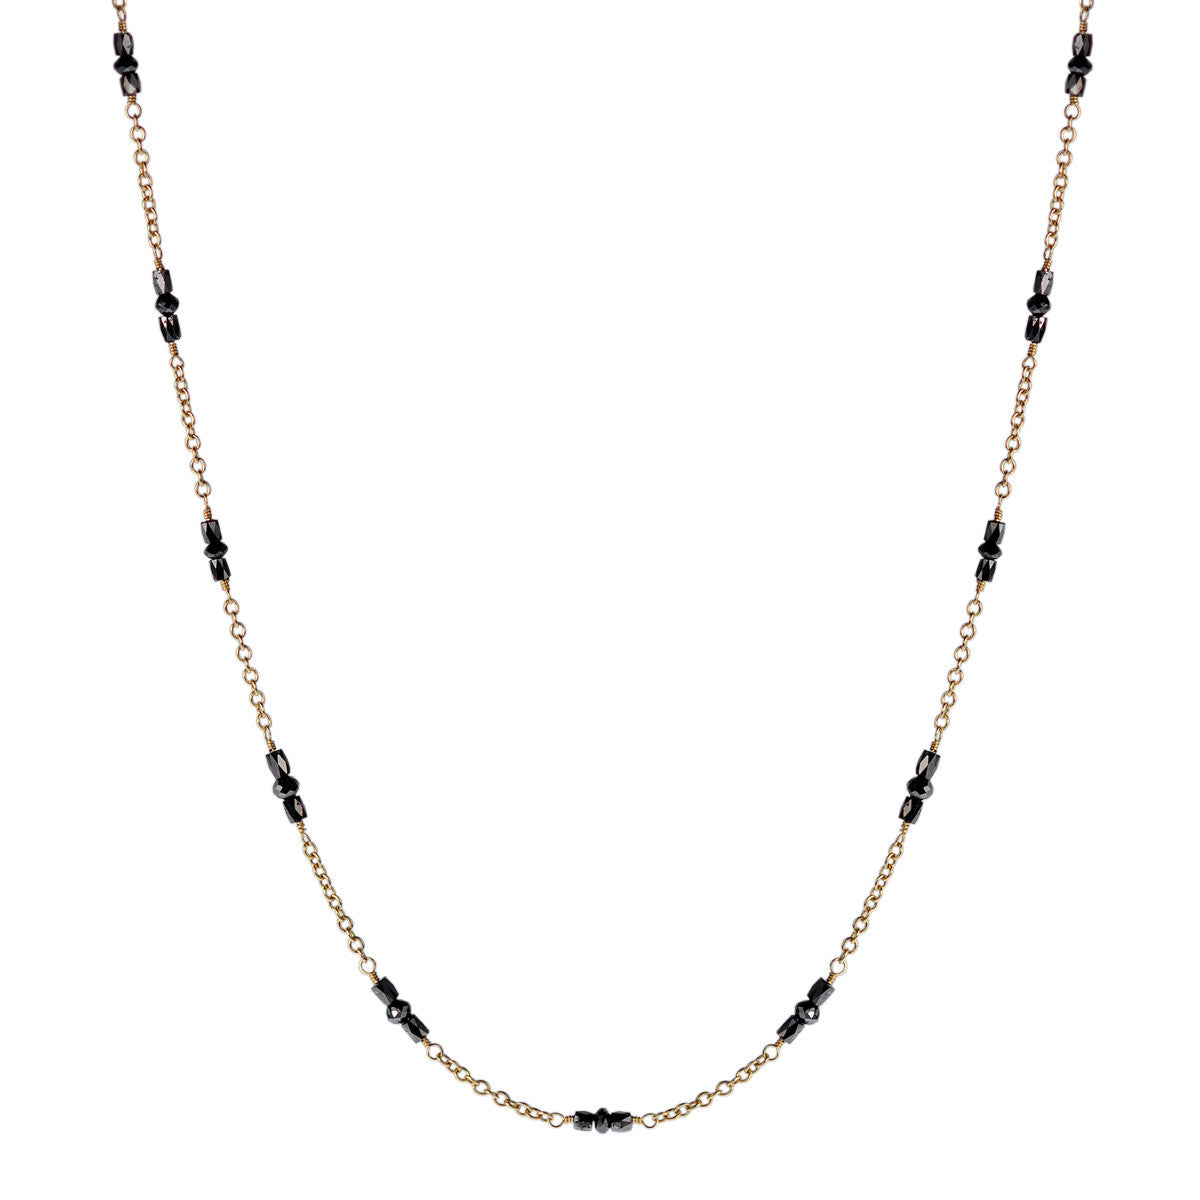 18K Gold Black Diamond Station Chain